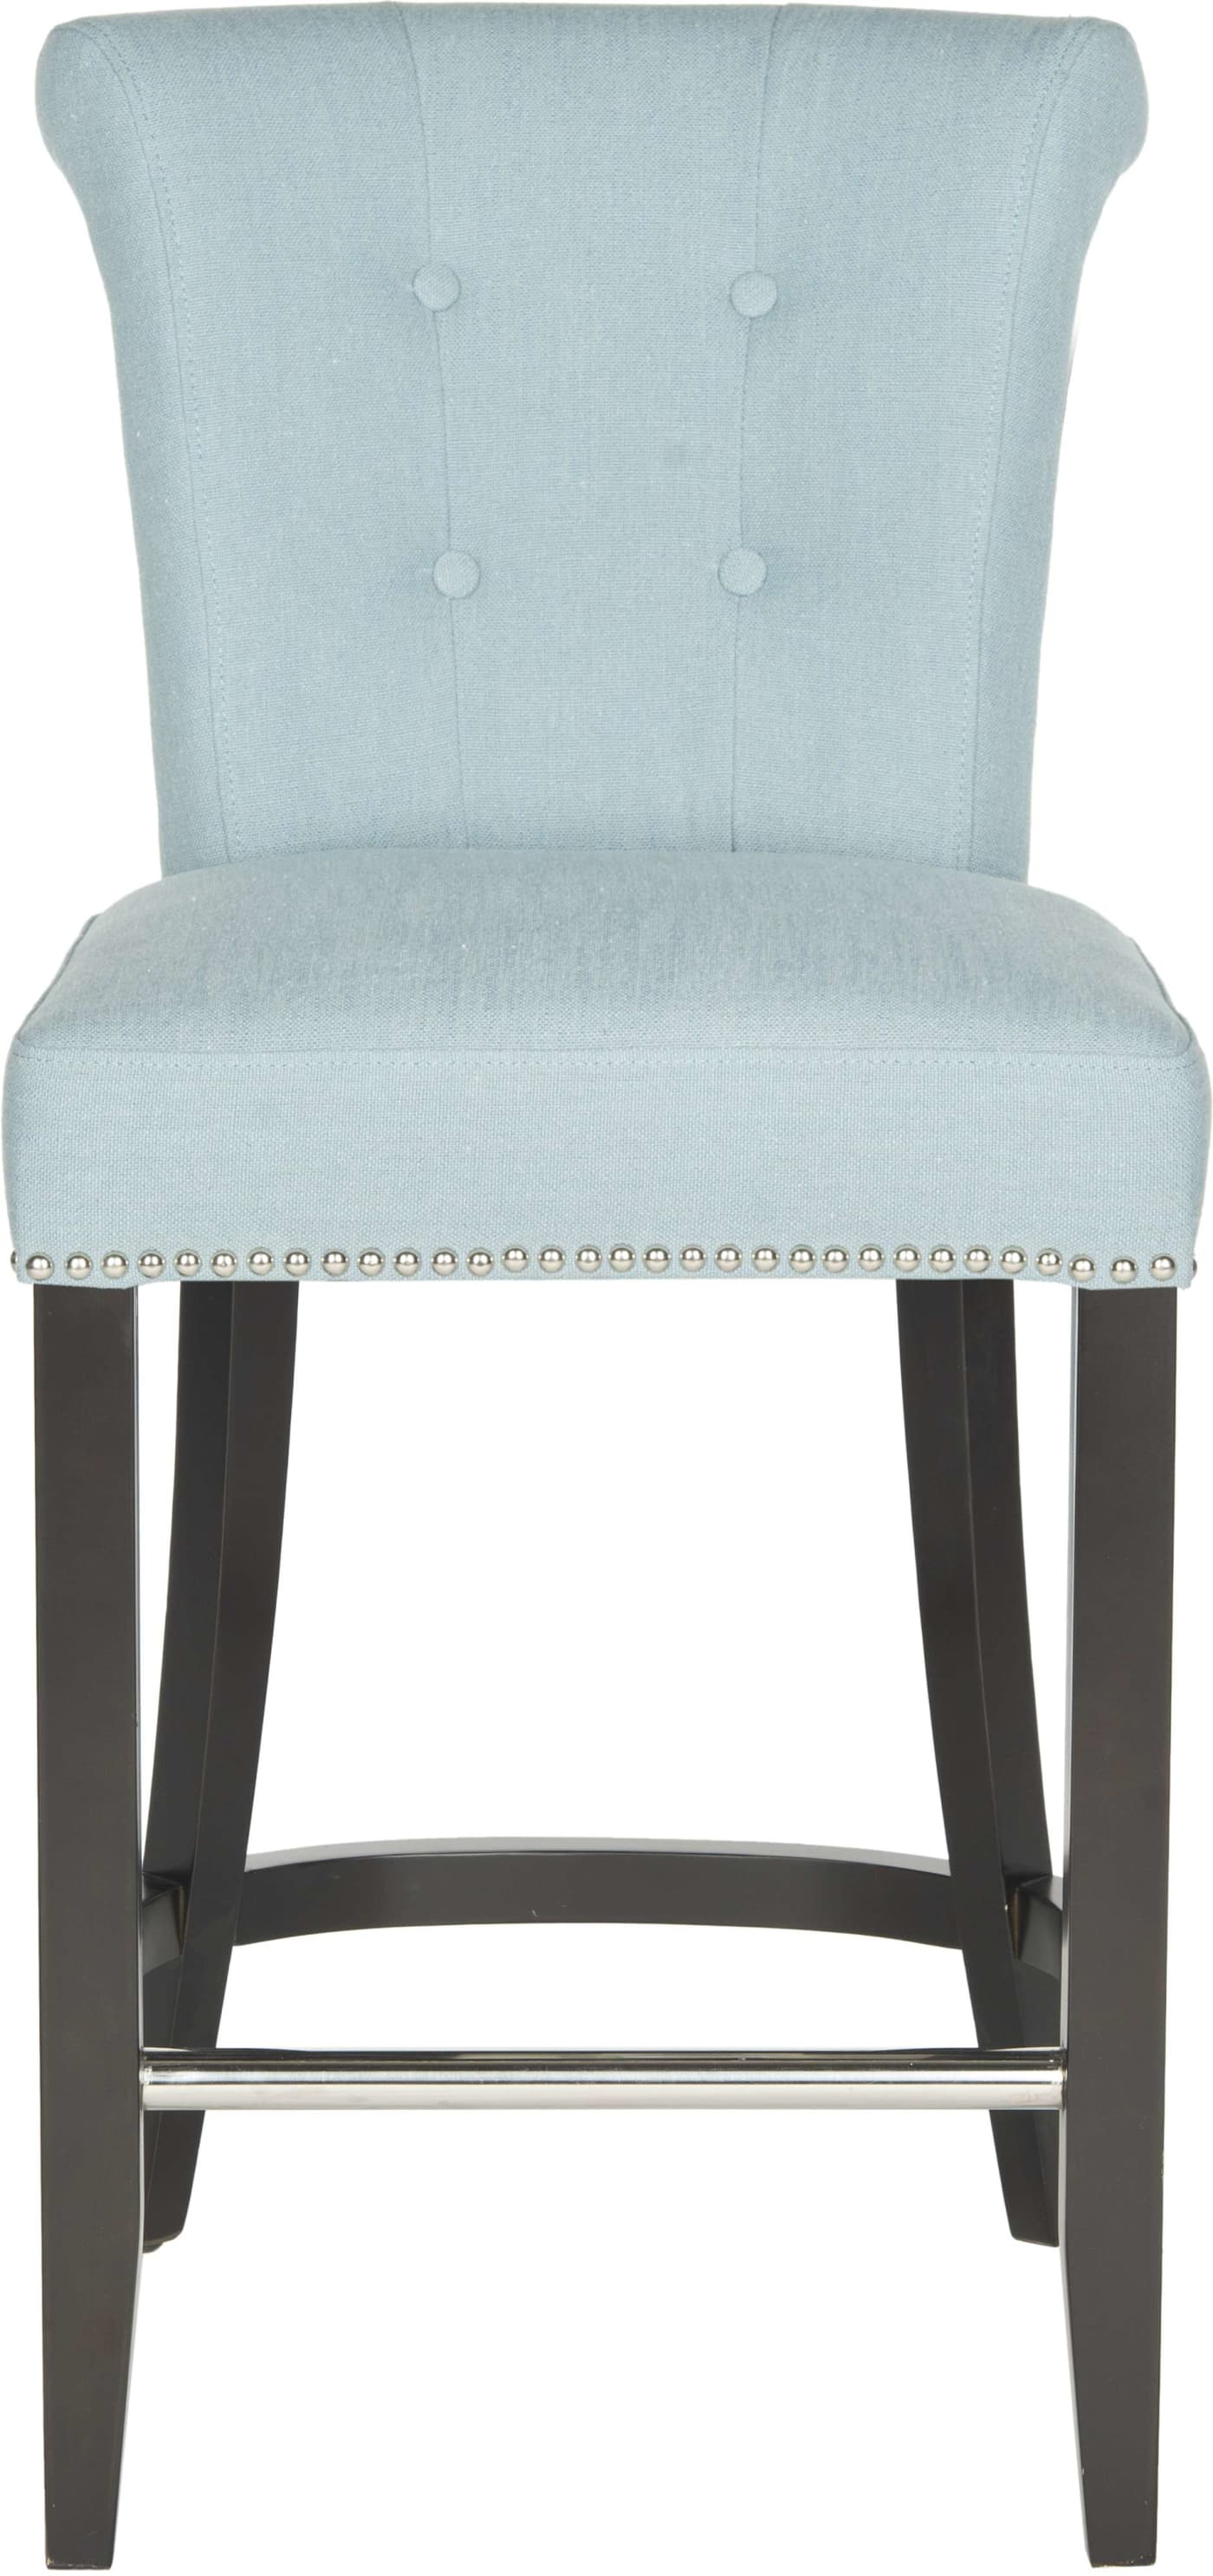 Safavieh Addo Ring Sky Blue Counter Stool Amp Reviews